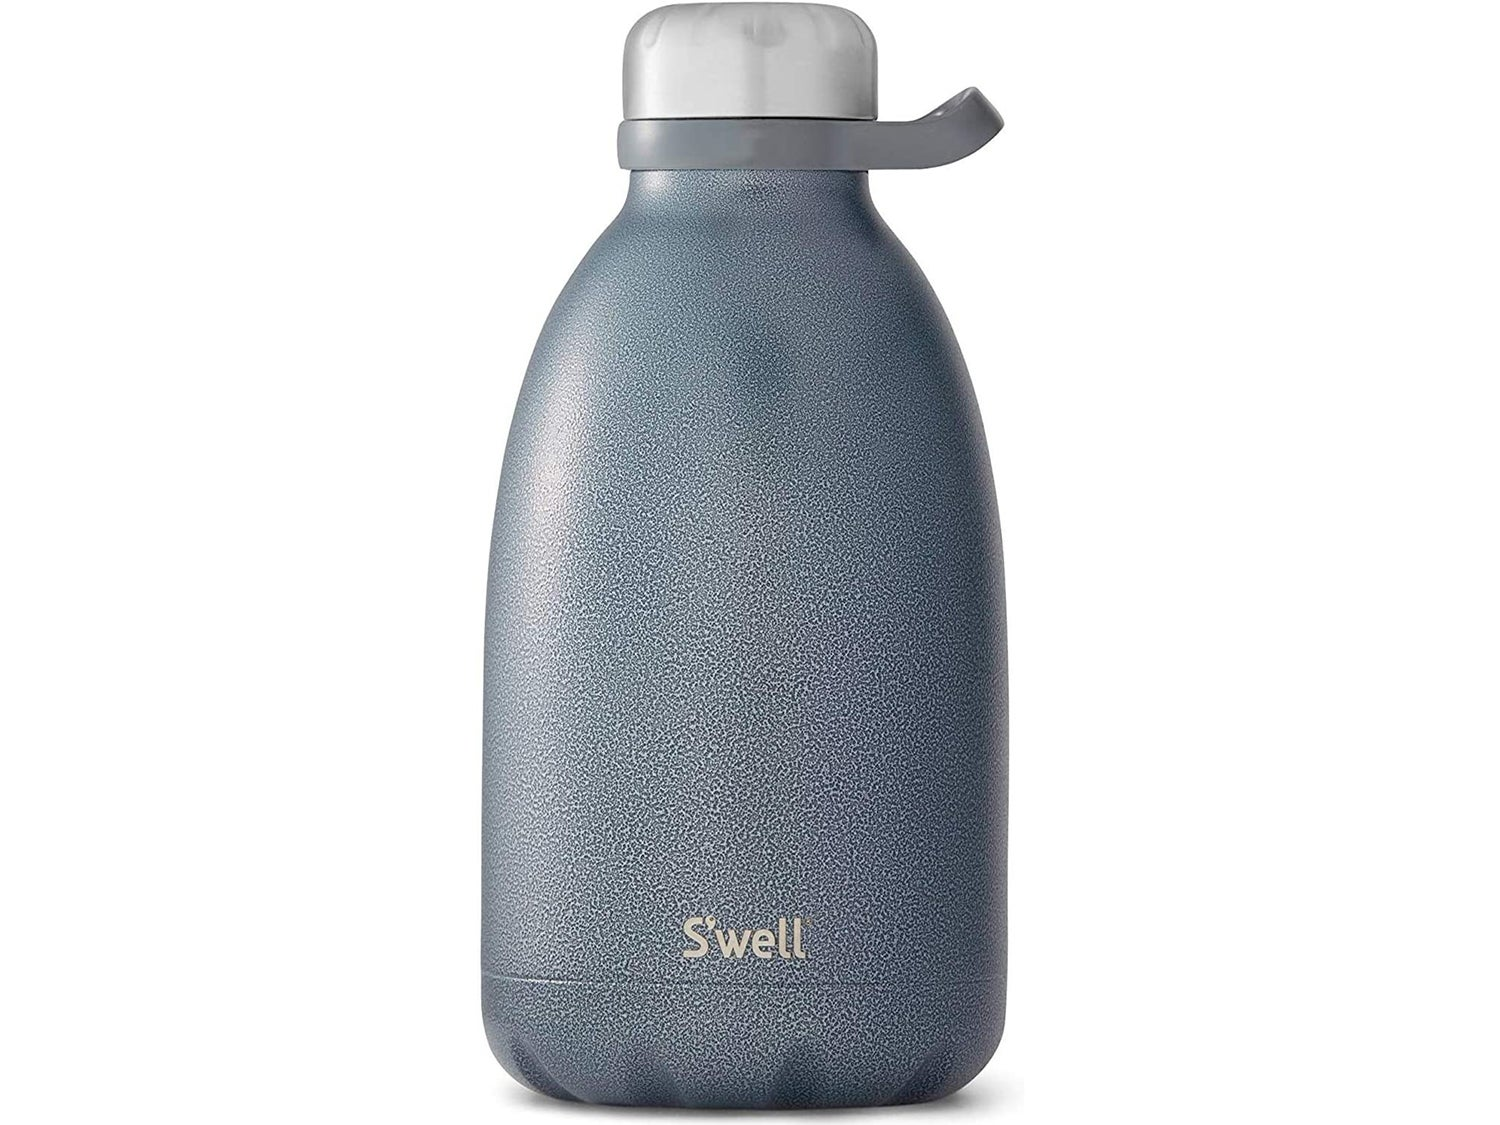 S'well Stainless Steel Roamer Bottle - 64 Fl Oz - Night Sky - Triple-Layered Vacuum-Insulated Containers Keeps Drinks Cold for 81 Hours and Hot for 29 - with No Condensation - BPA Free Water Bottle